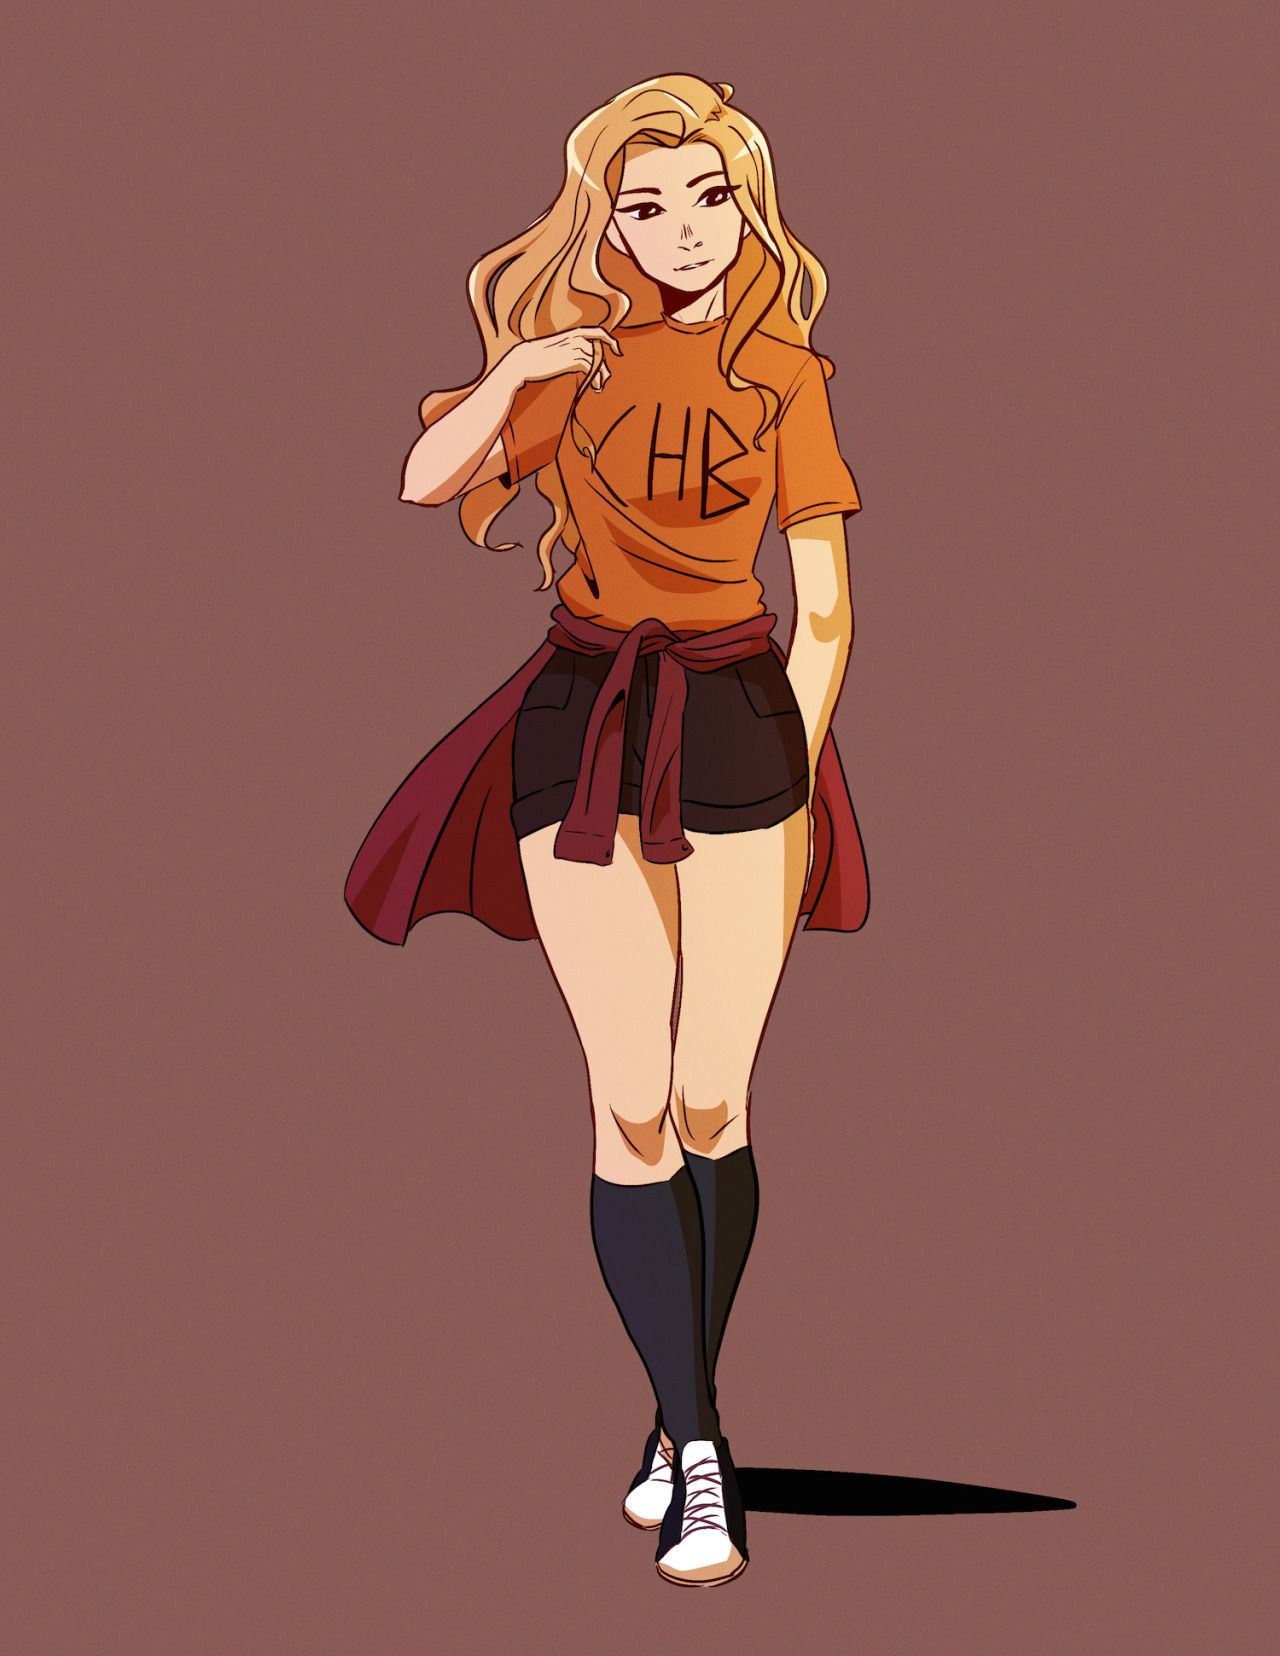 This Is One Of The Best Fanarts Ive Seen Of Annabeth F A N D O M